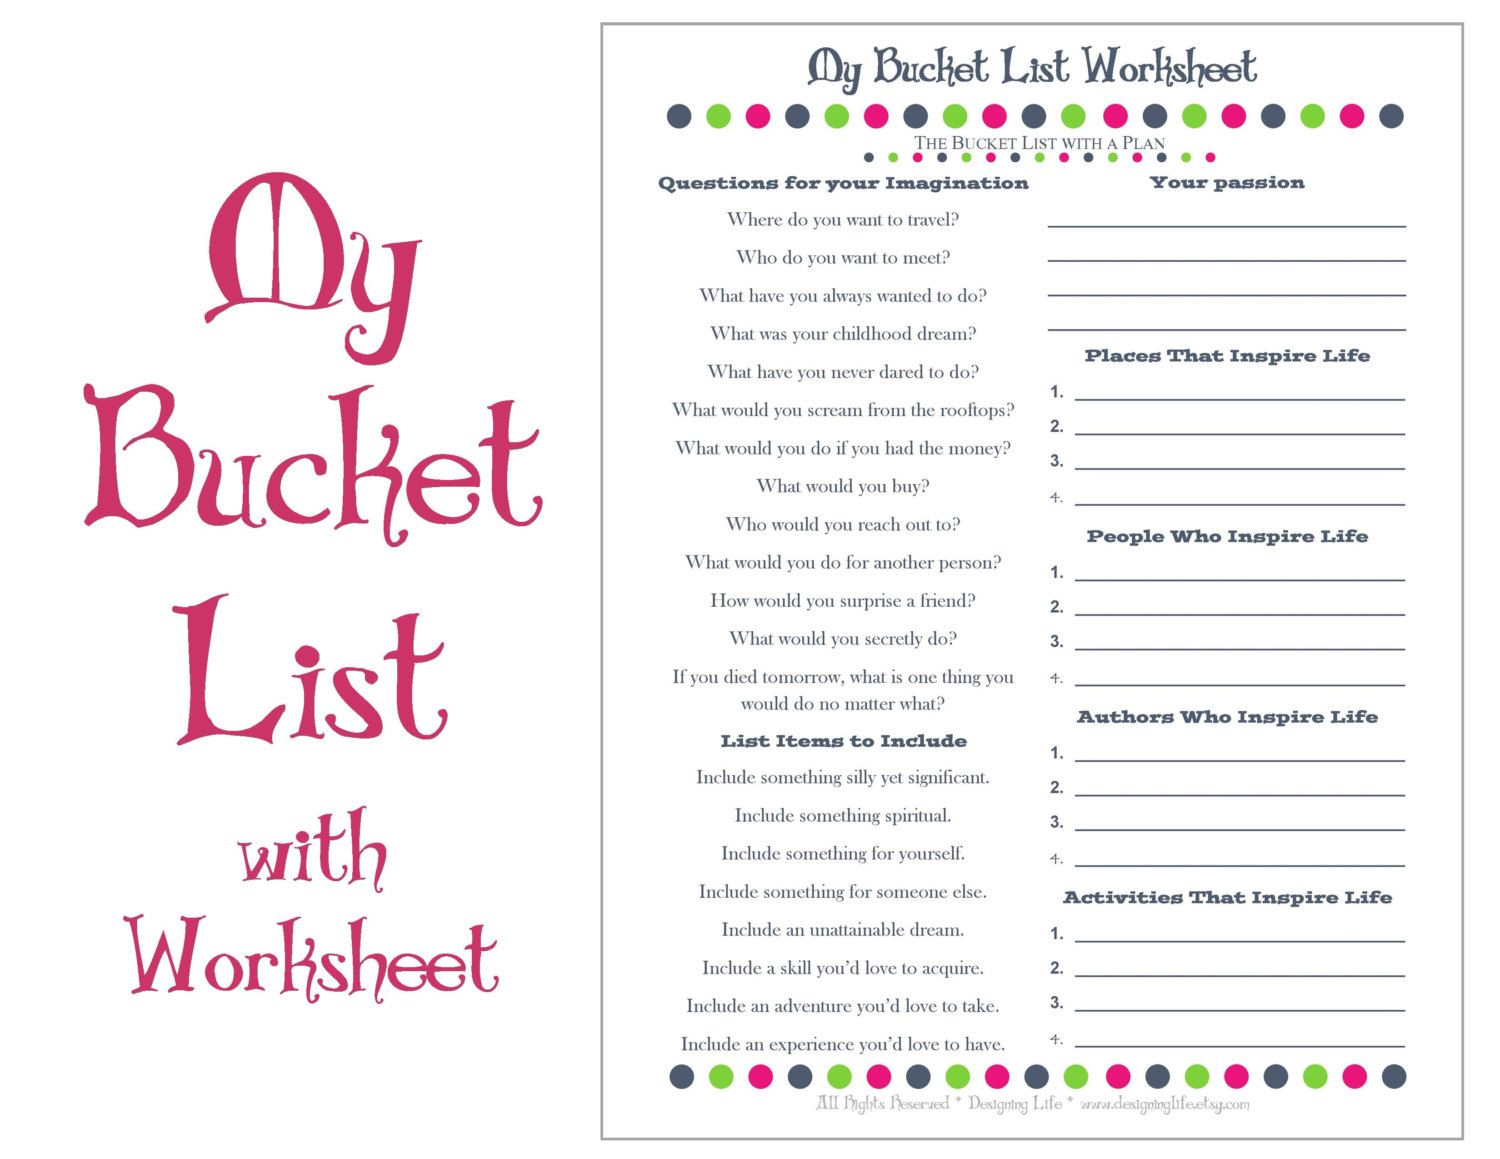 Bucket List Printable With Worksheet  Make A Plan To Live Life To